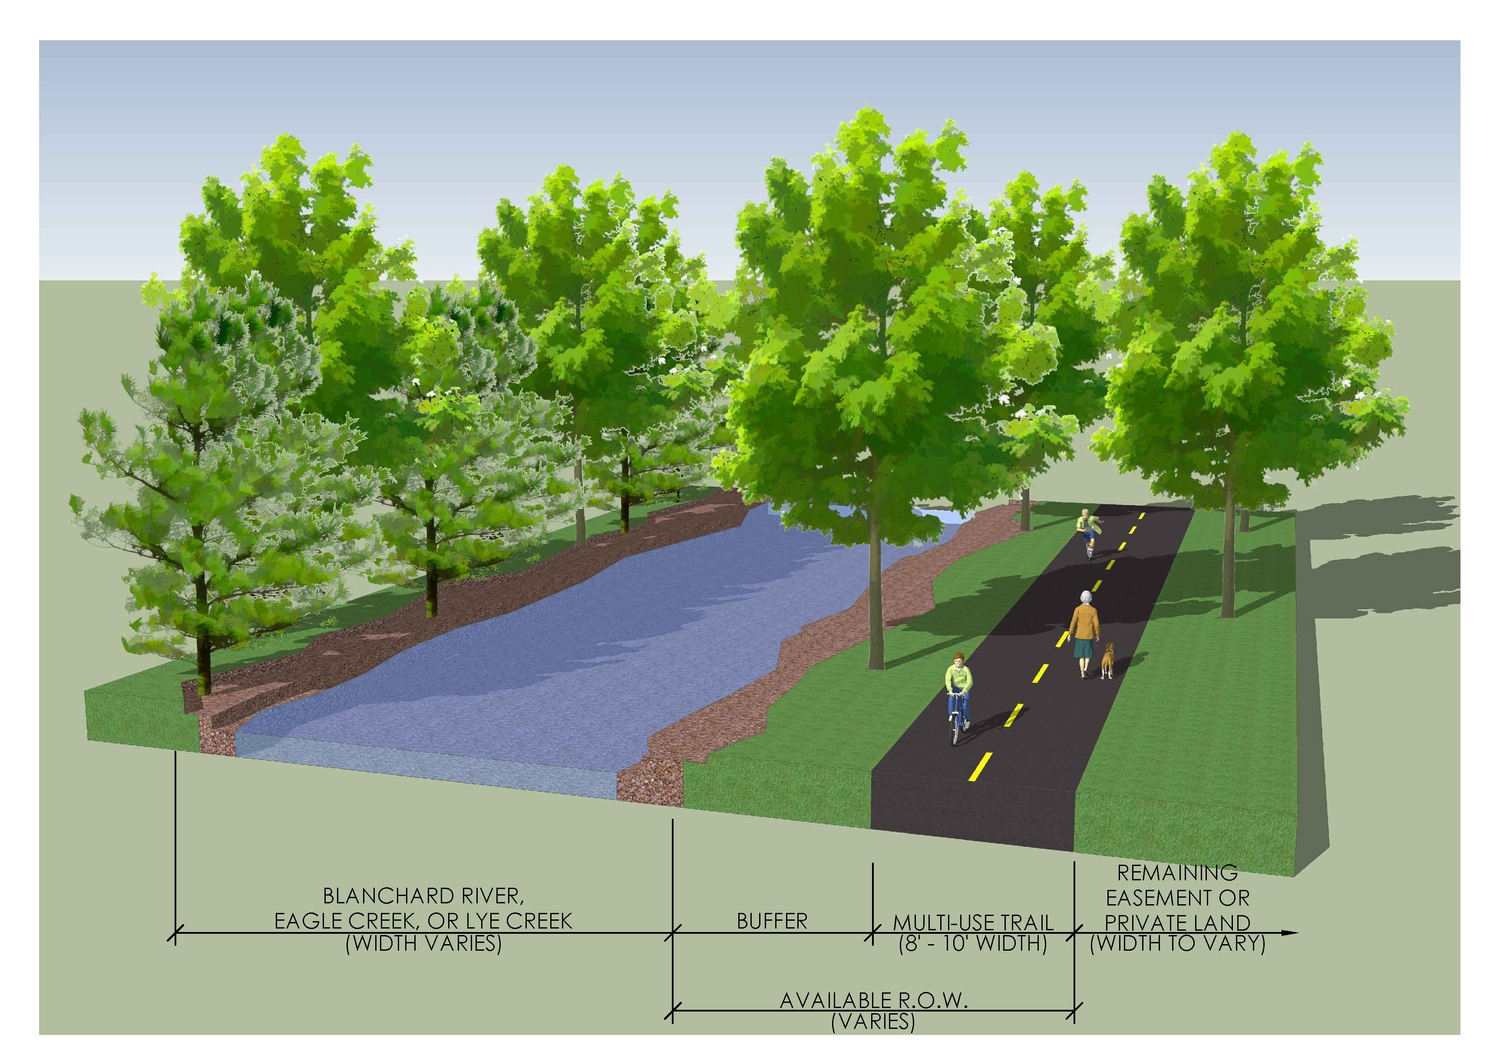 www.rcmarchitects.com - hancock park district - multi-use trails master plan (2)